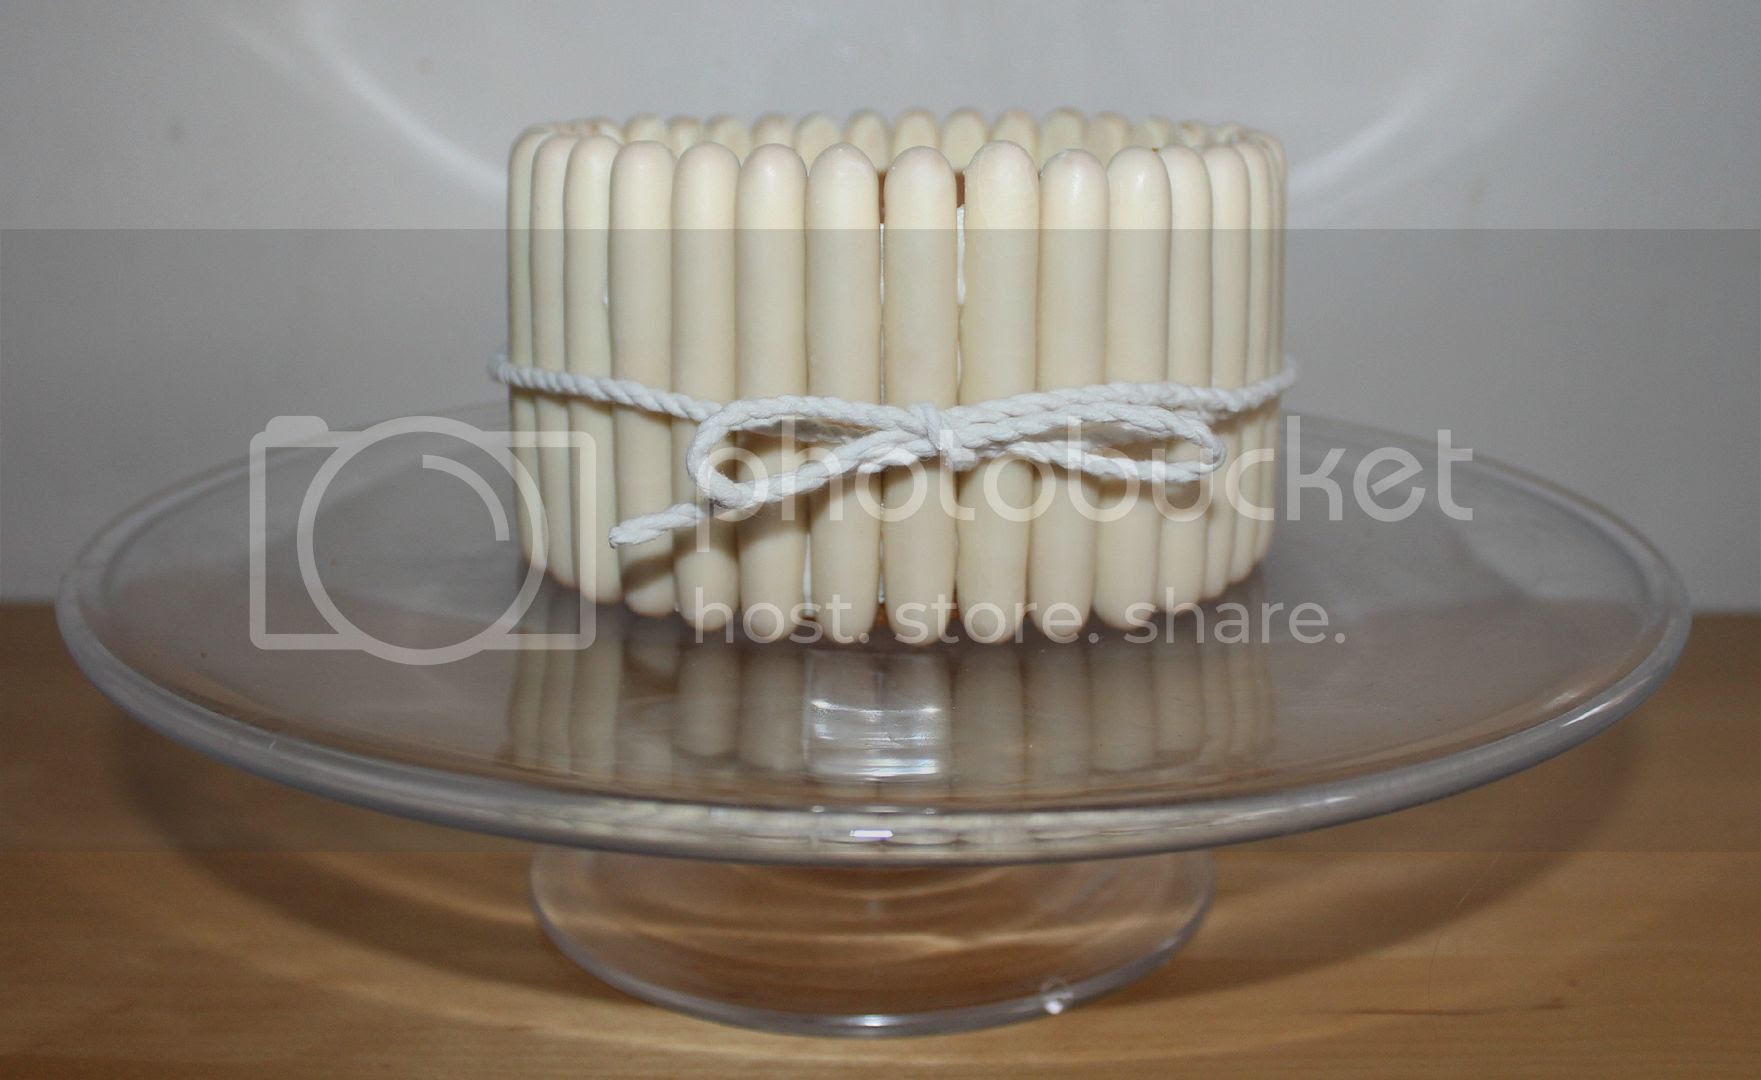 white chocolate fingers on cake